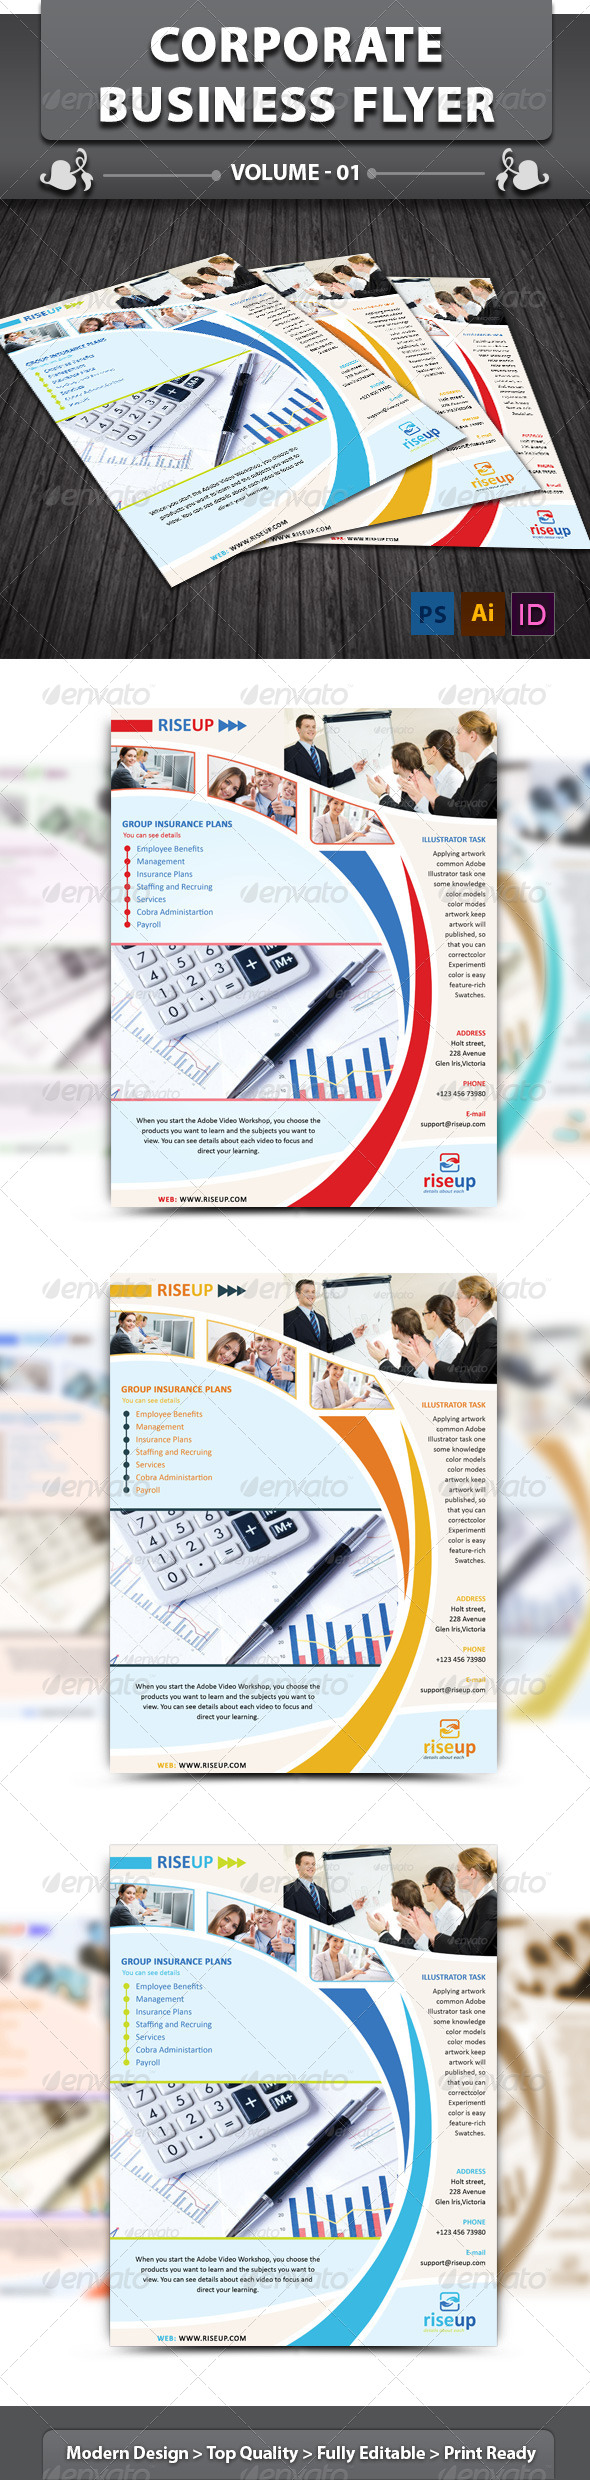 Corporate Business Flyer | Volume 1 - Corporate Flyers